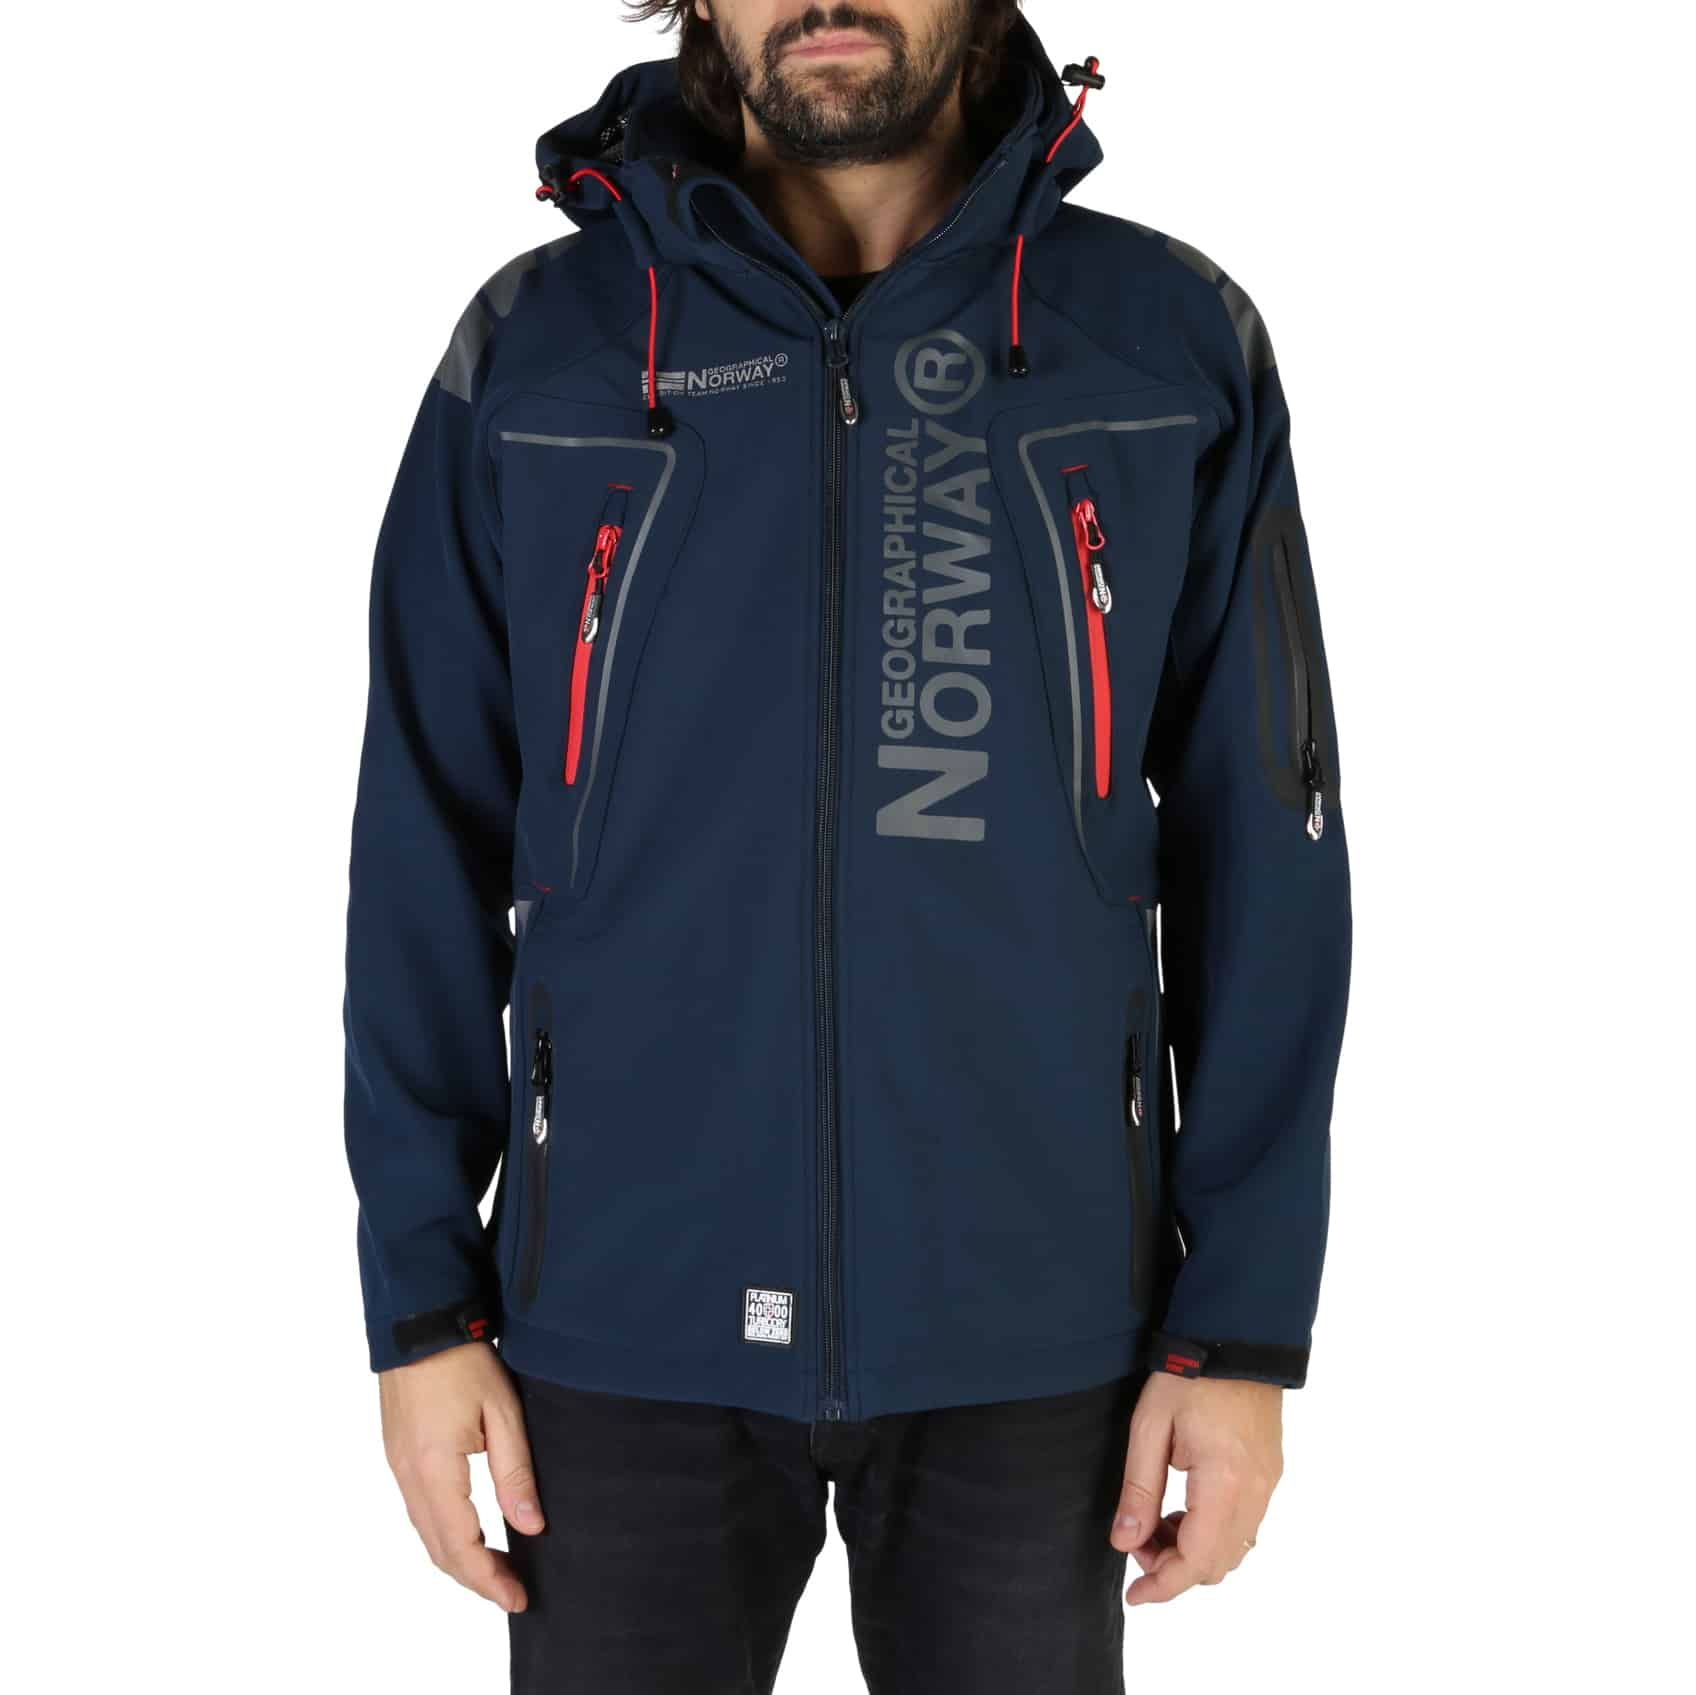 Geographical Norway – Techno_man